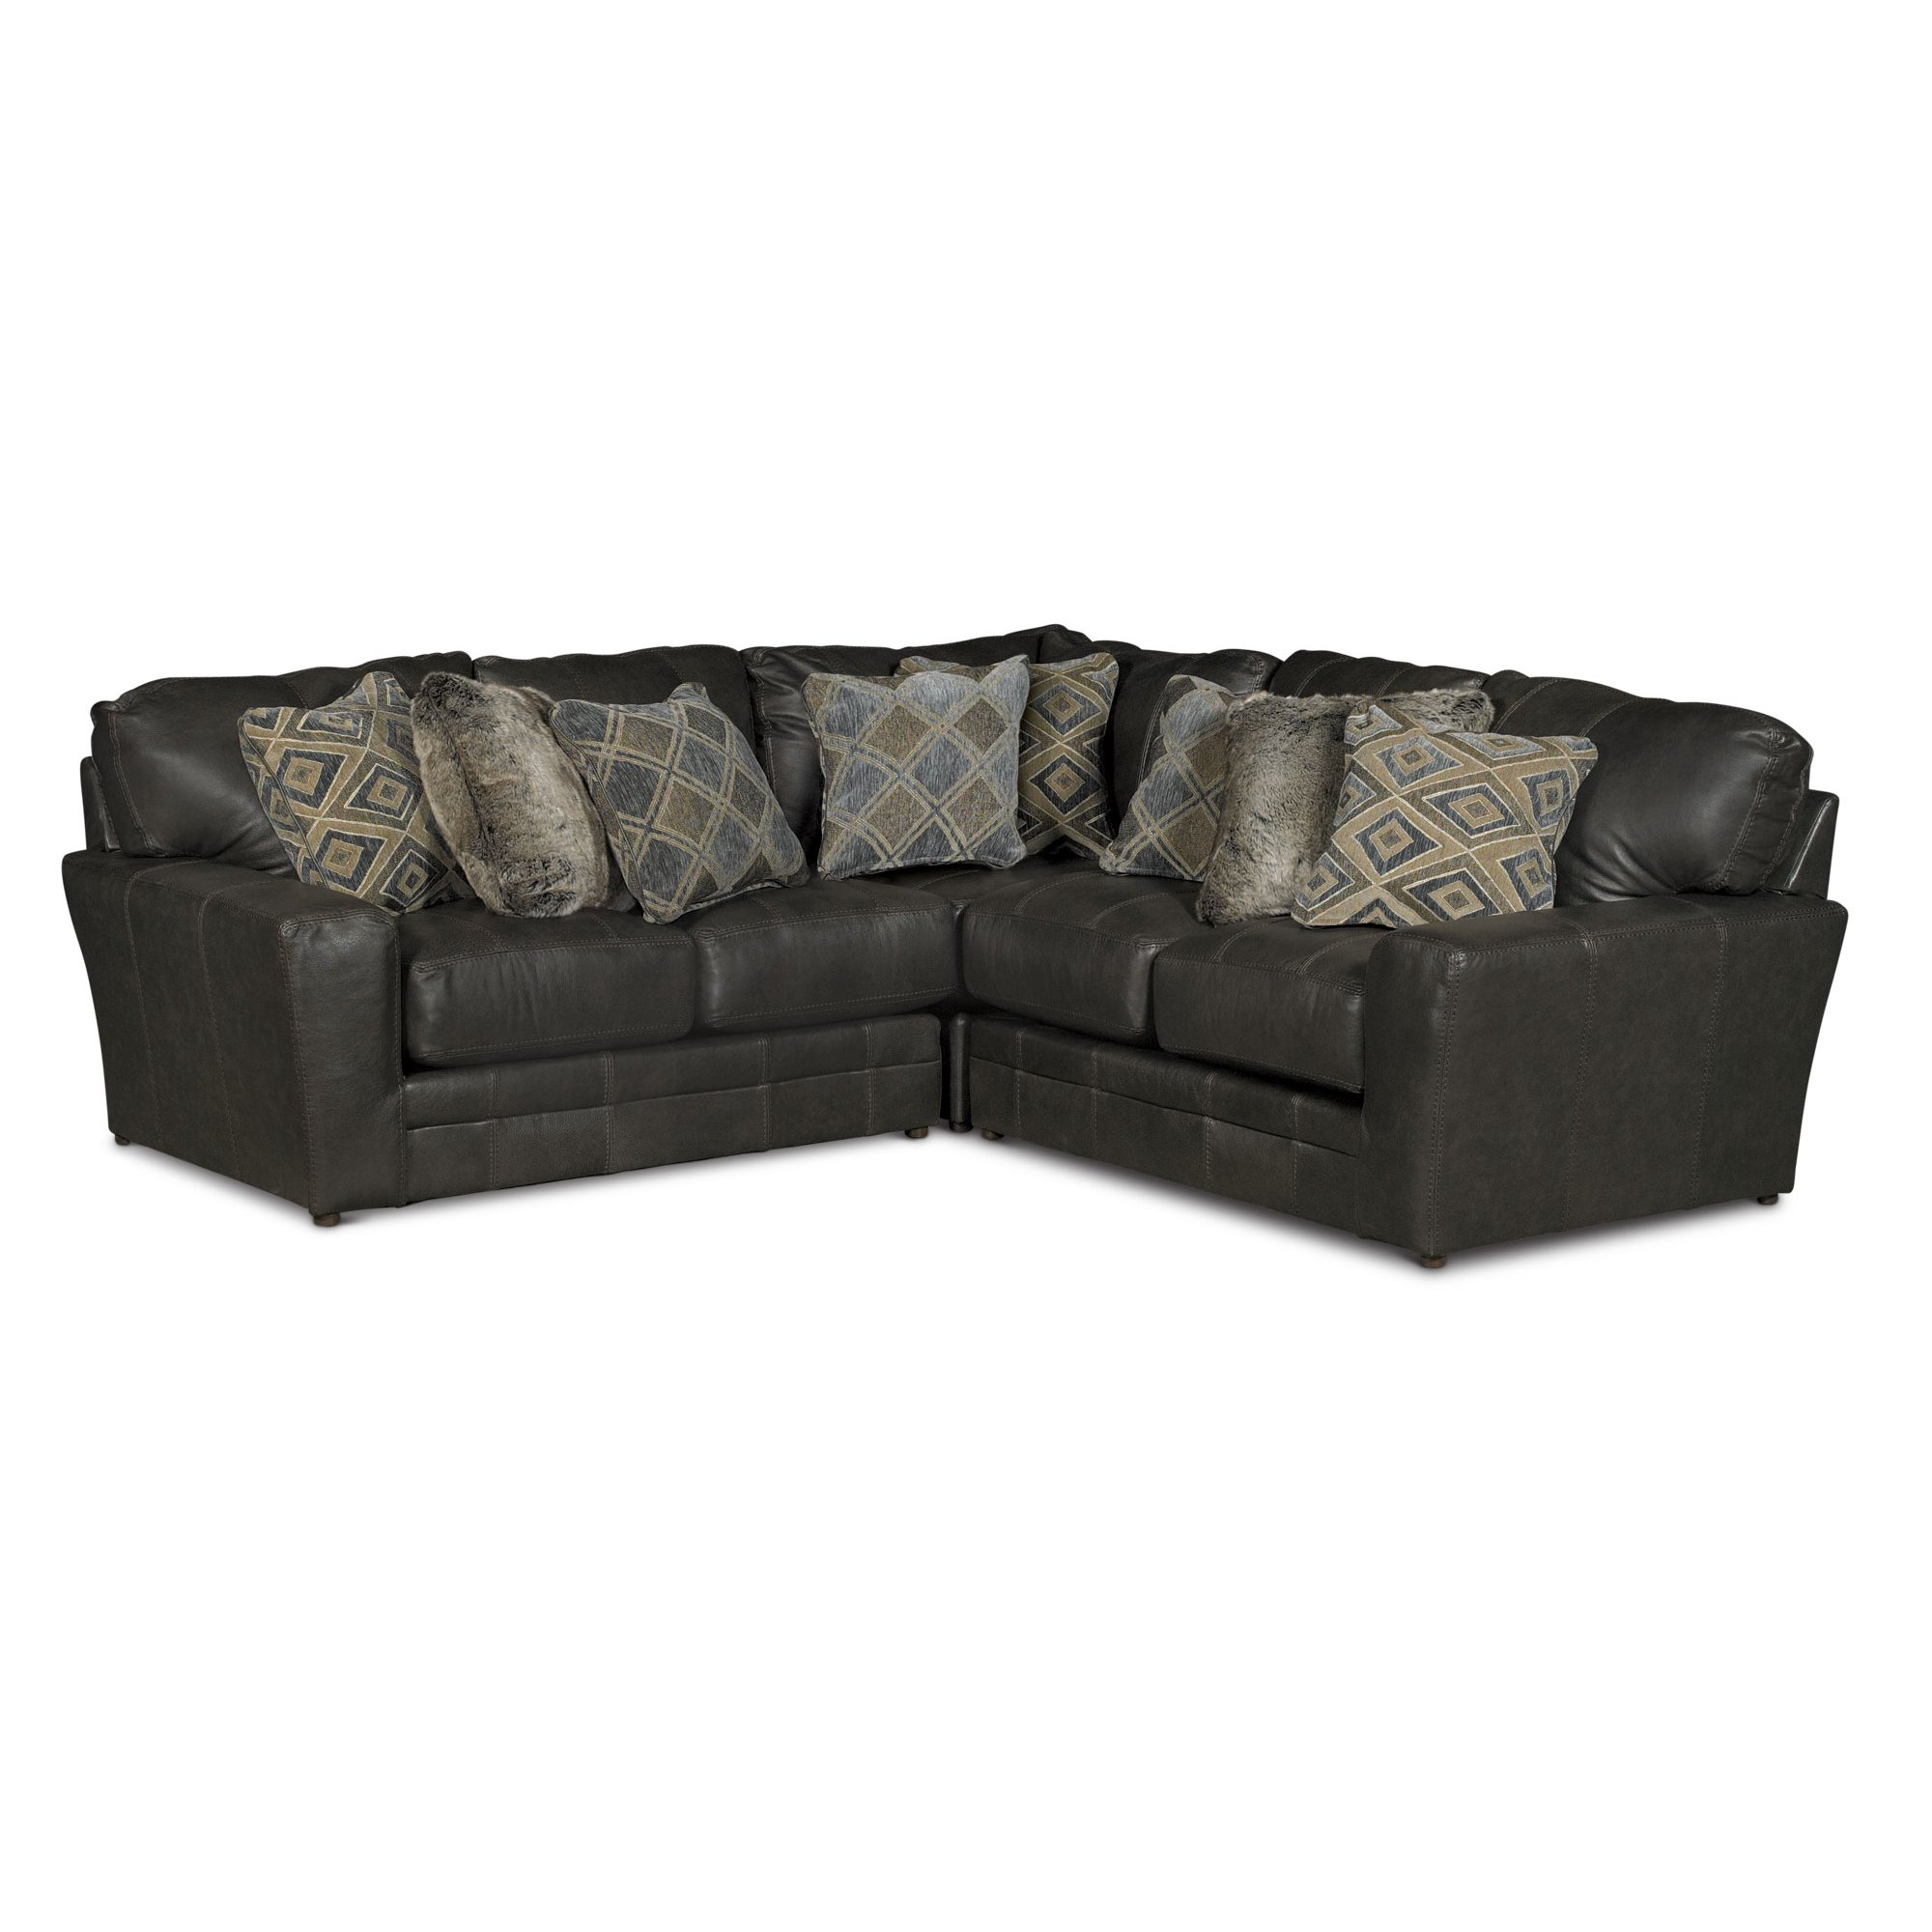 Casual Classic Steel Gray 3 Piece Sectional Sofa - Denali